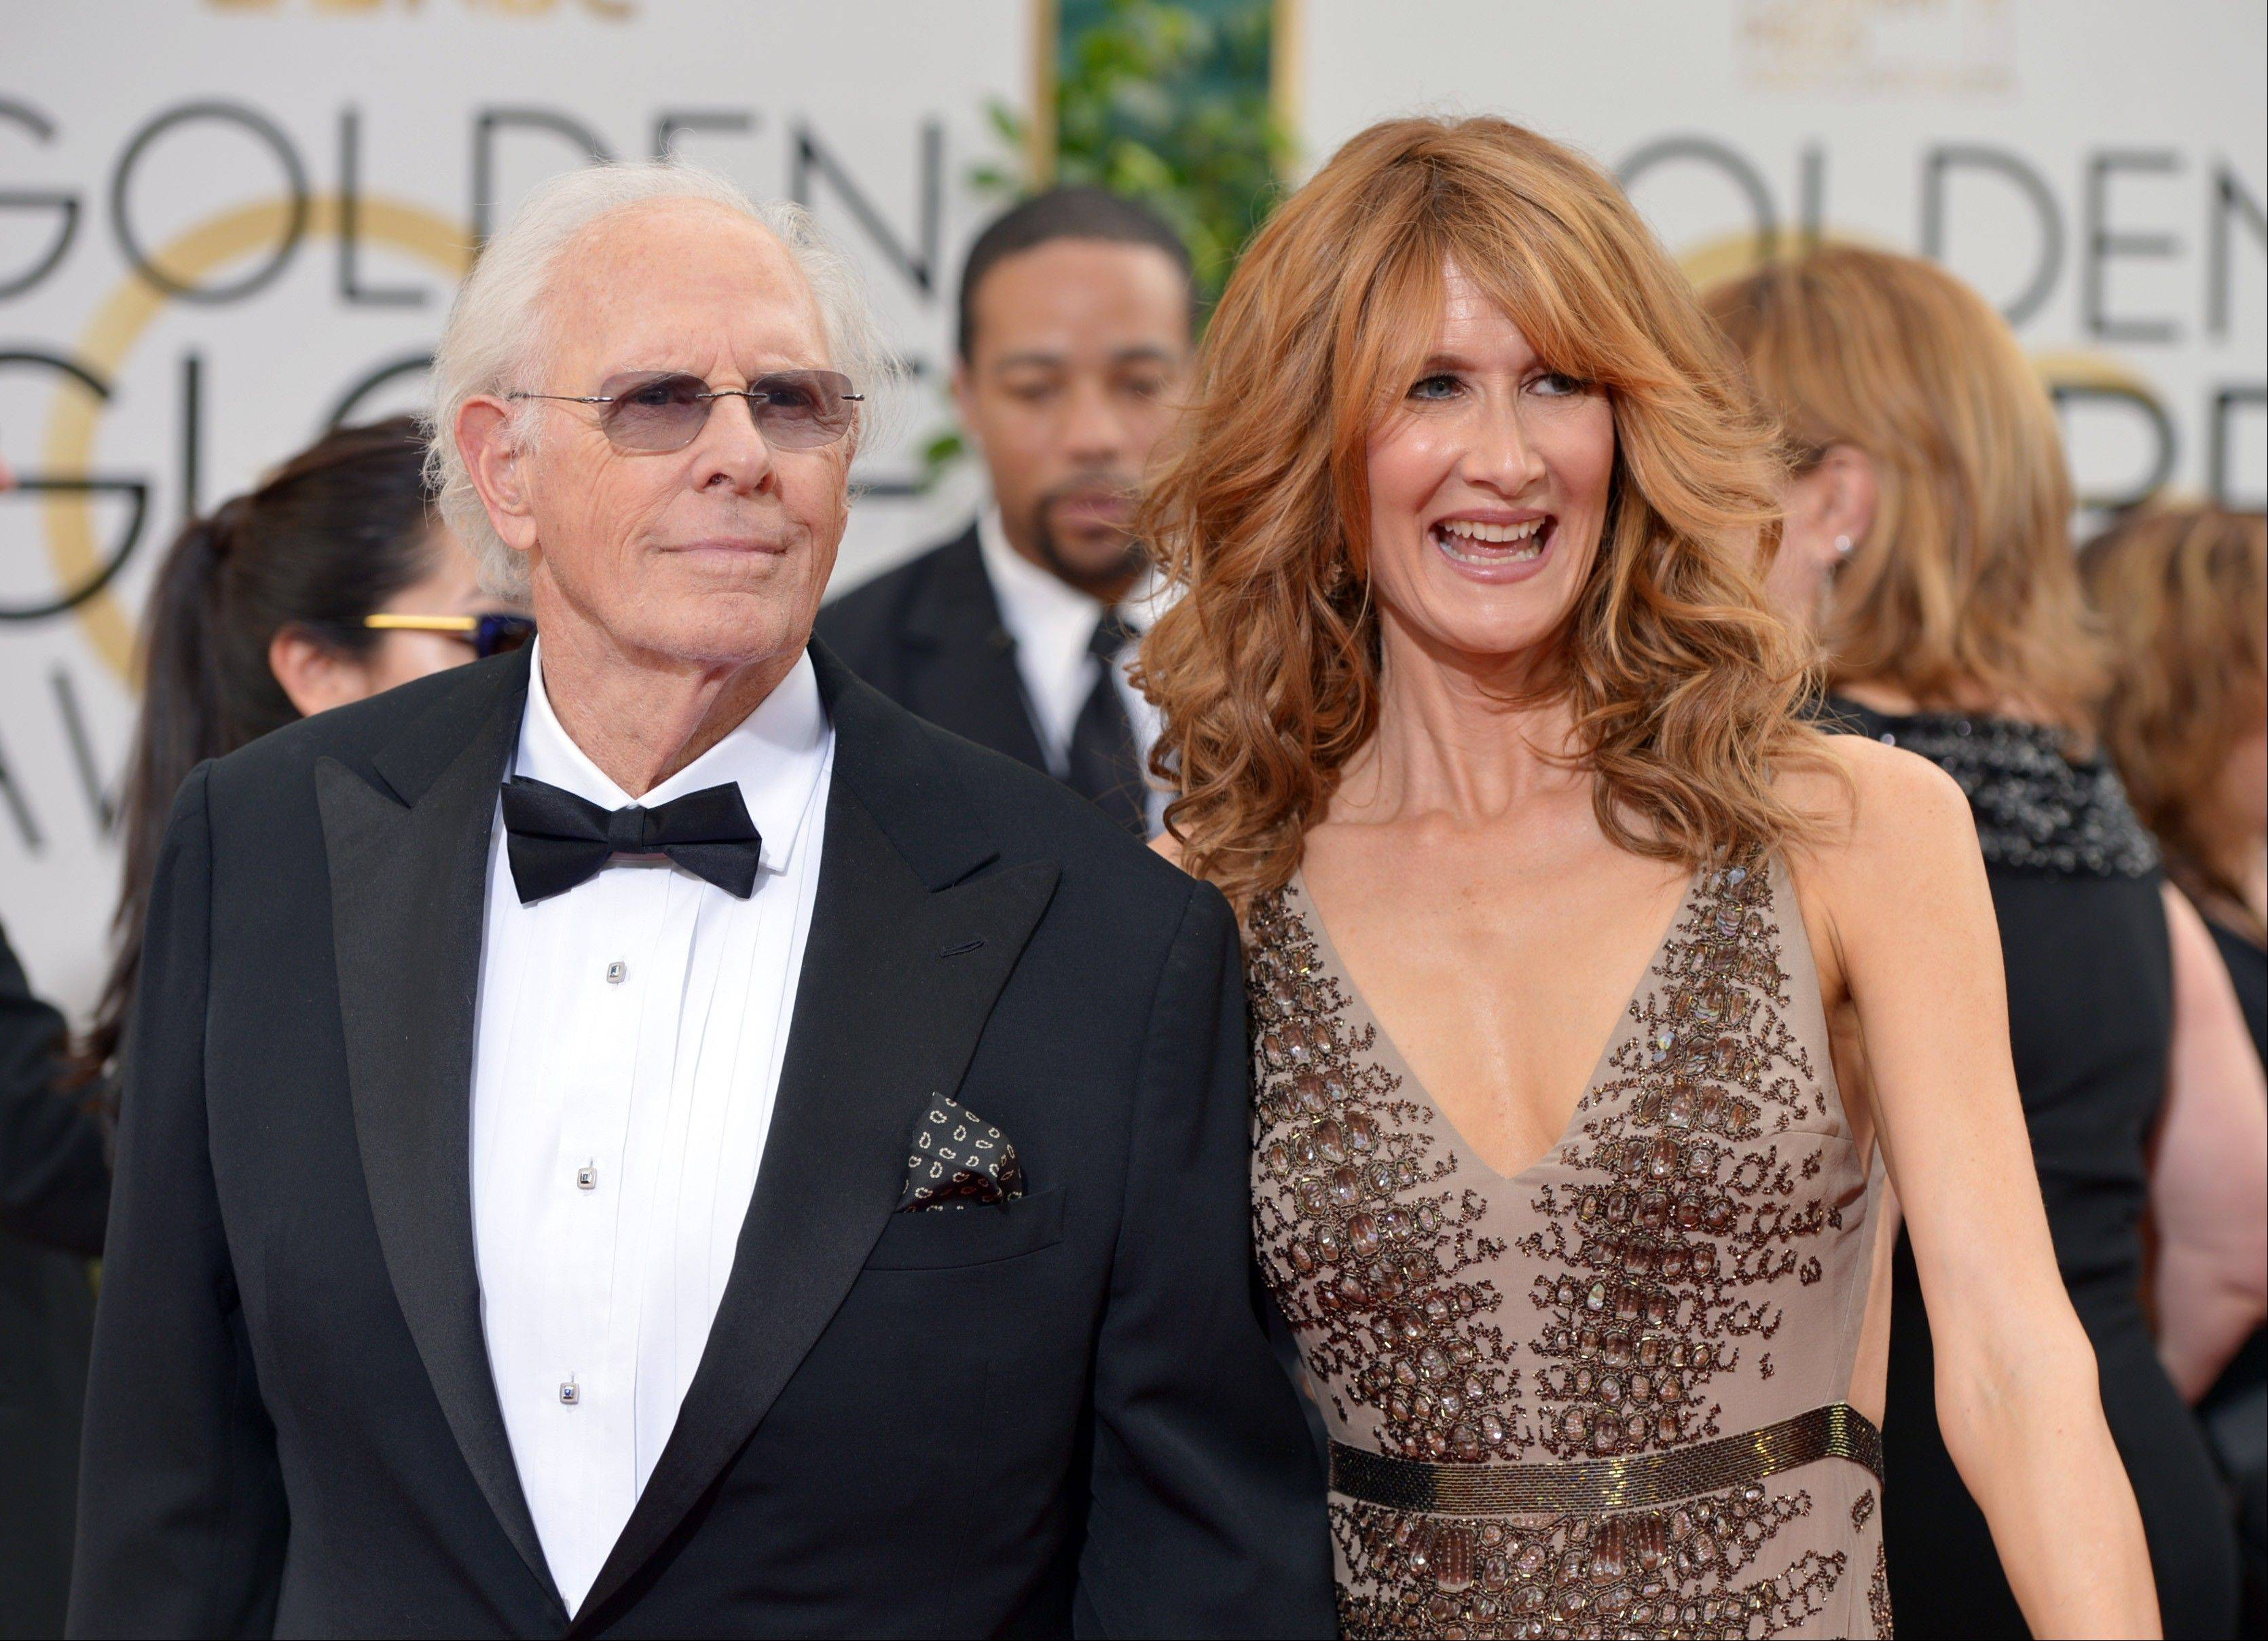 """Nebraska"" star Bruce Dern poses with his daughter, actress Laura Dern, as they make their way down the red carpet."